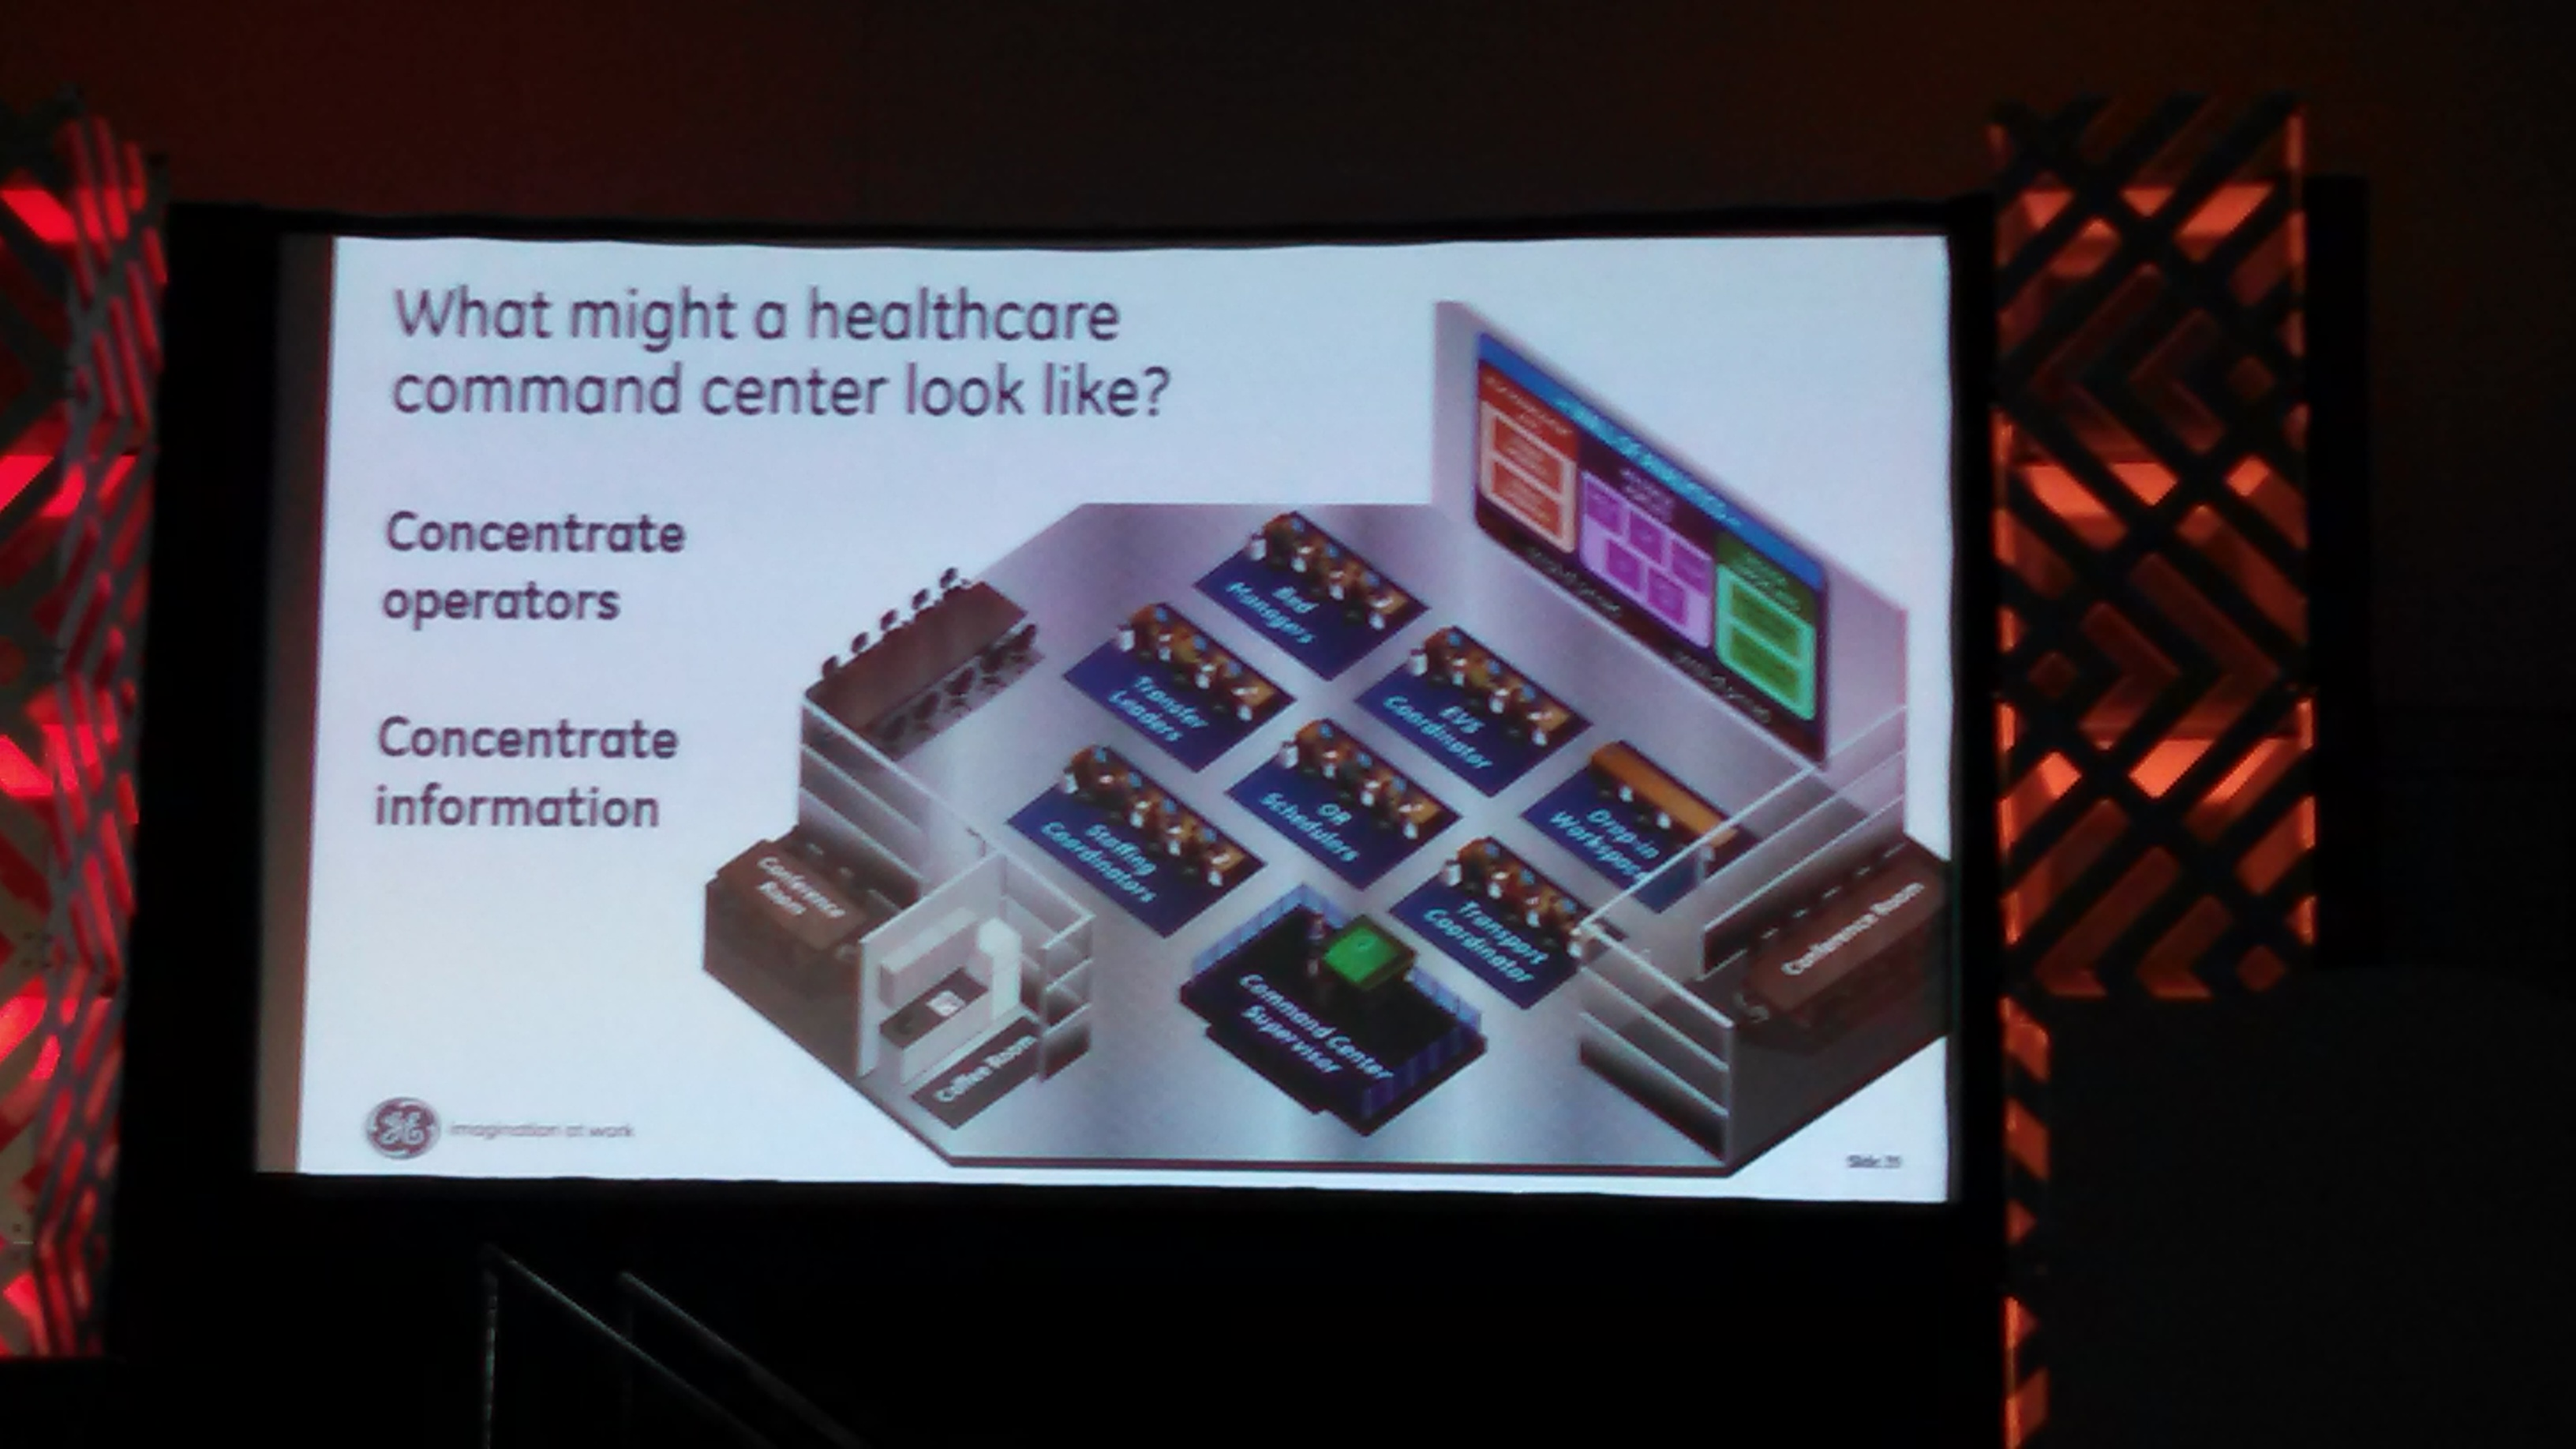 How will hospital command centers make healthcare more efficient?